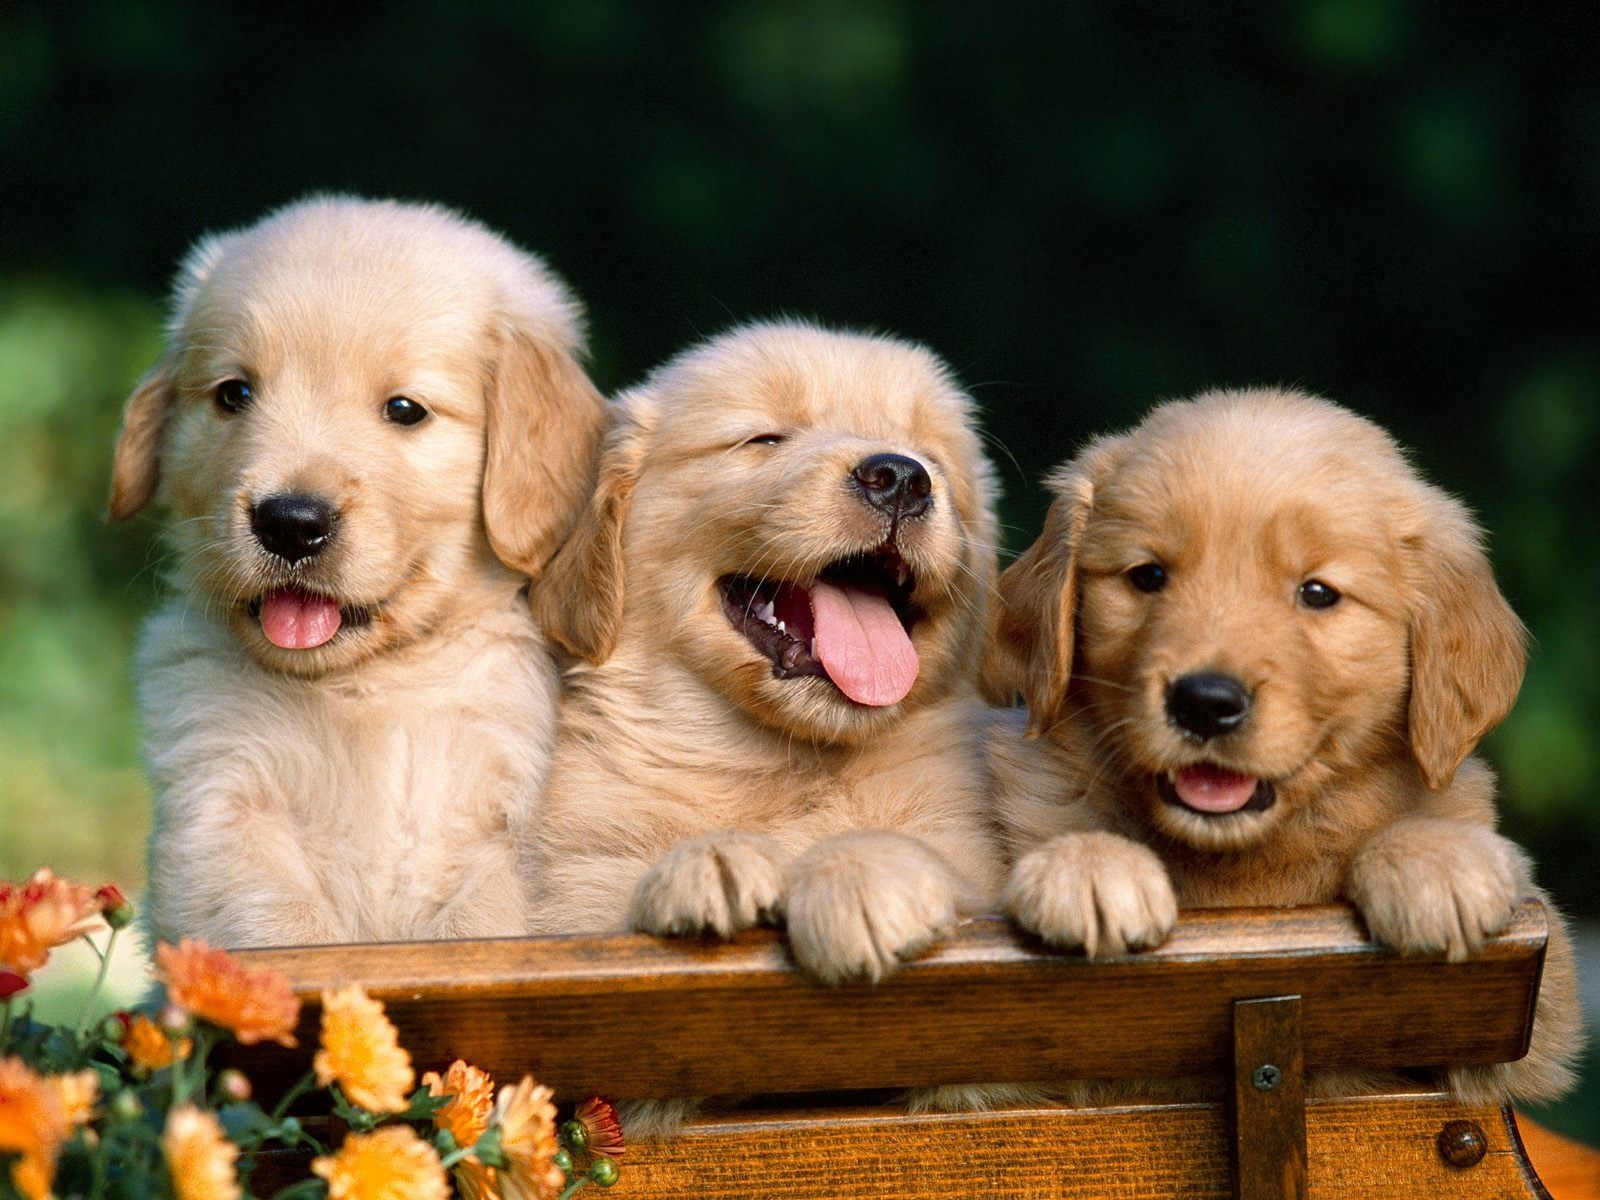 Pin By Alexia On Cute Puppies Cute Animals Puppies Cute Dogs